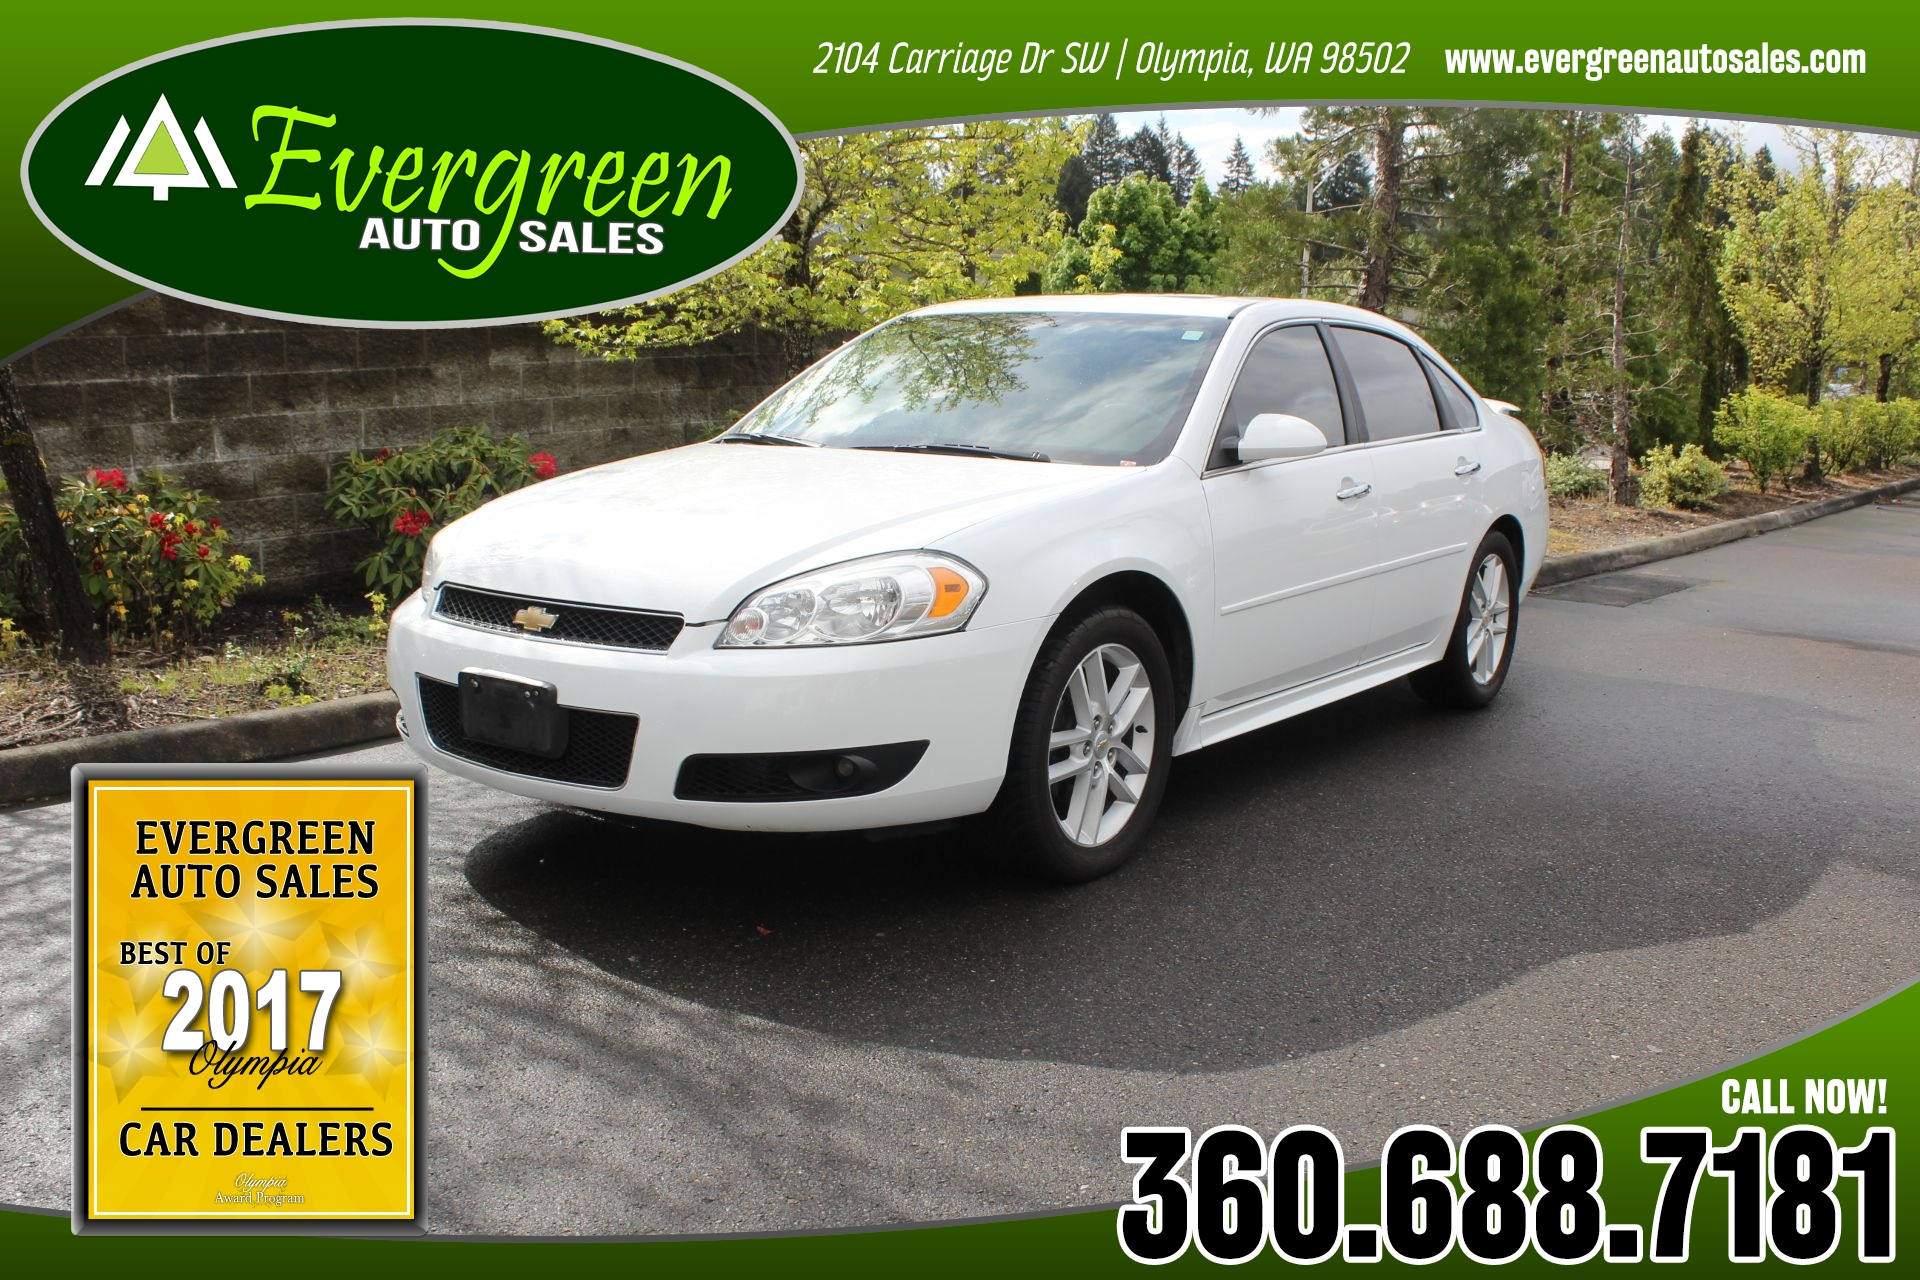 Pre Owned Cars Evergreen Auto Sales